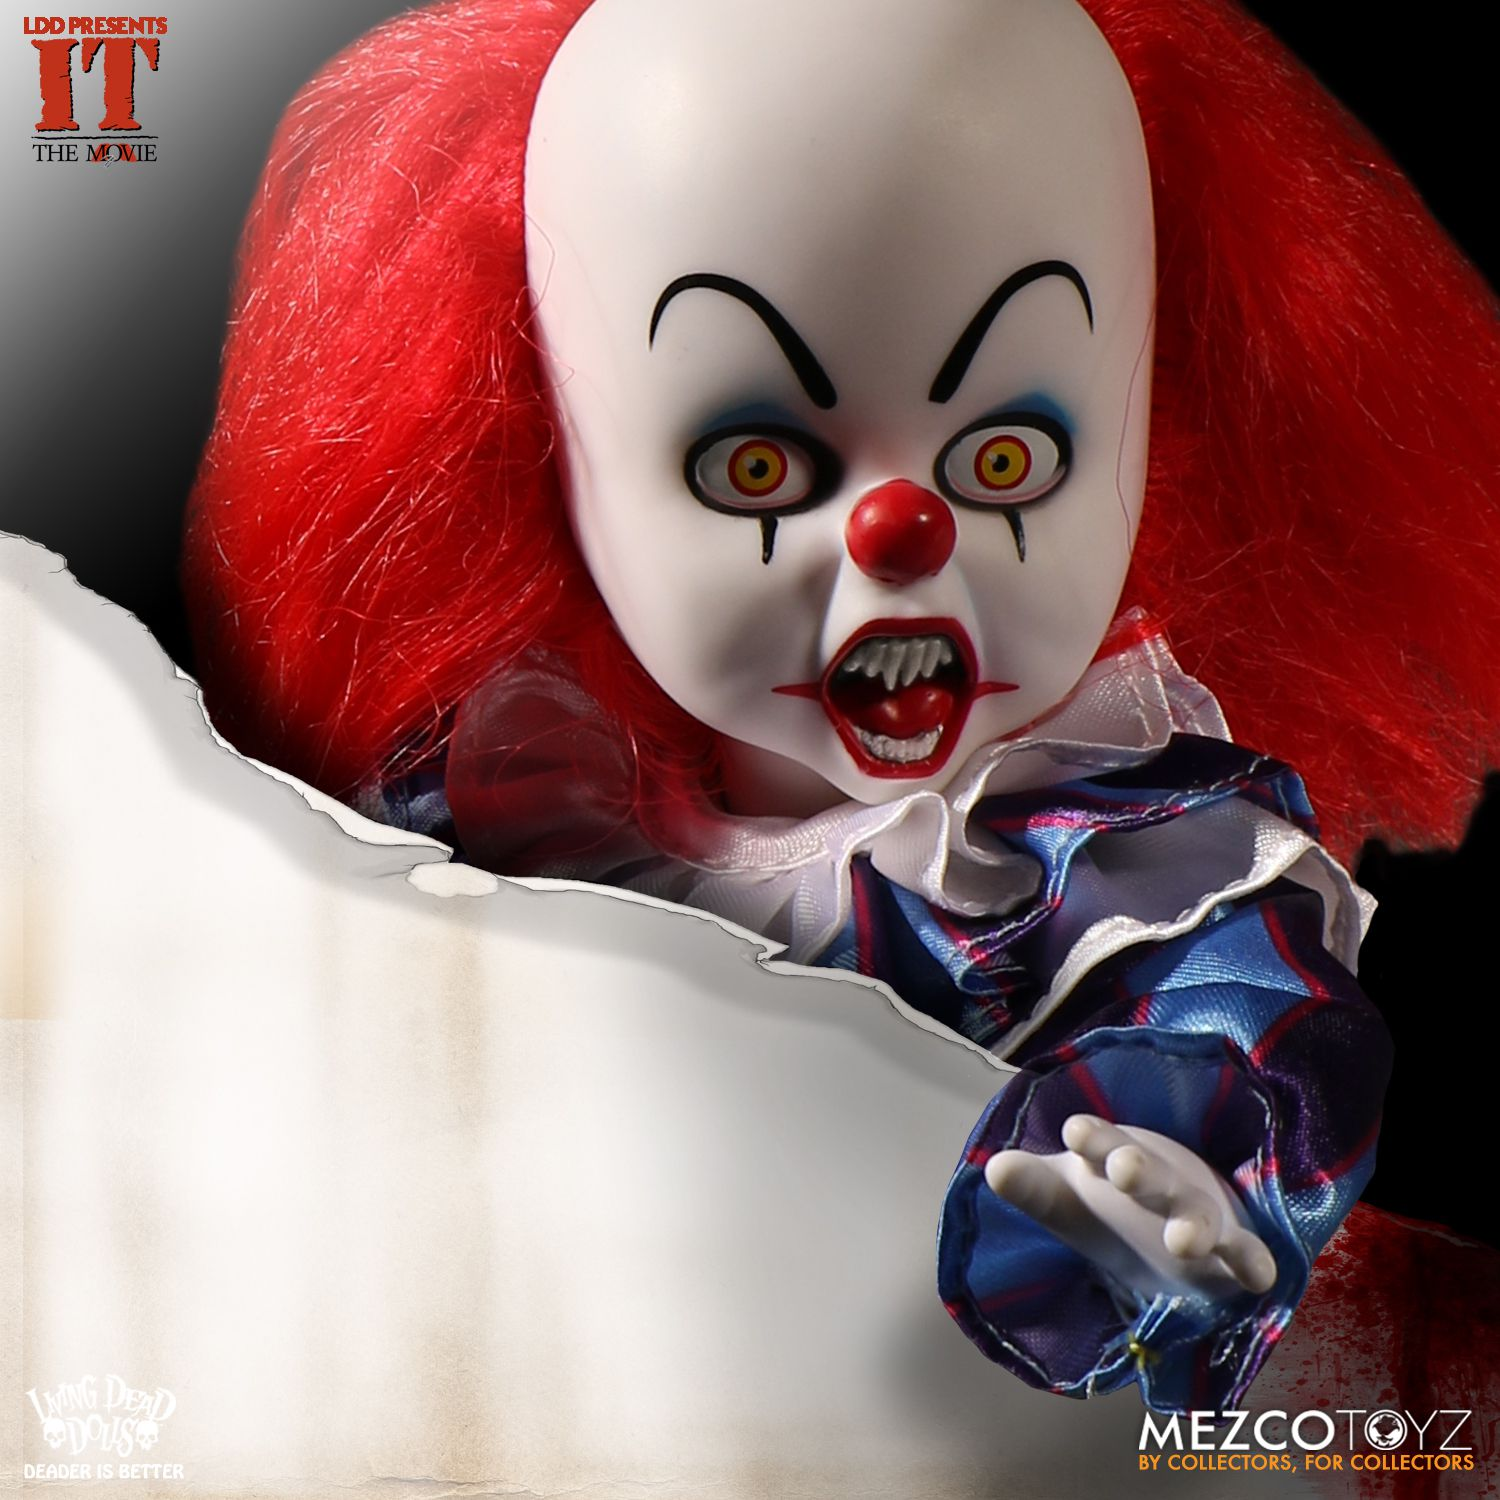 Living Dead Doll Mezco Pennywise IT Clown Doll Scary Stephen King